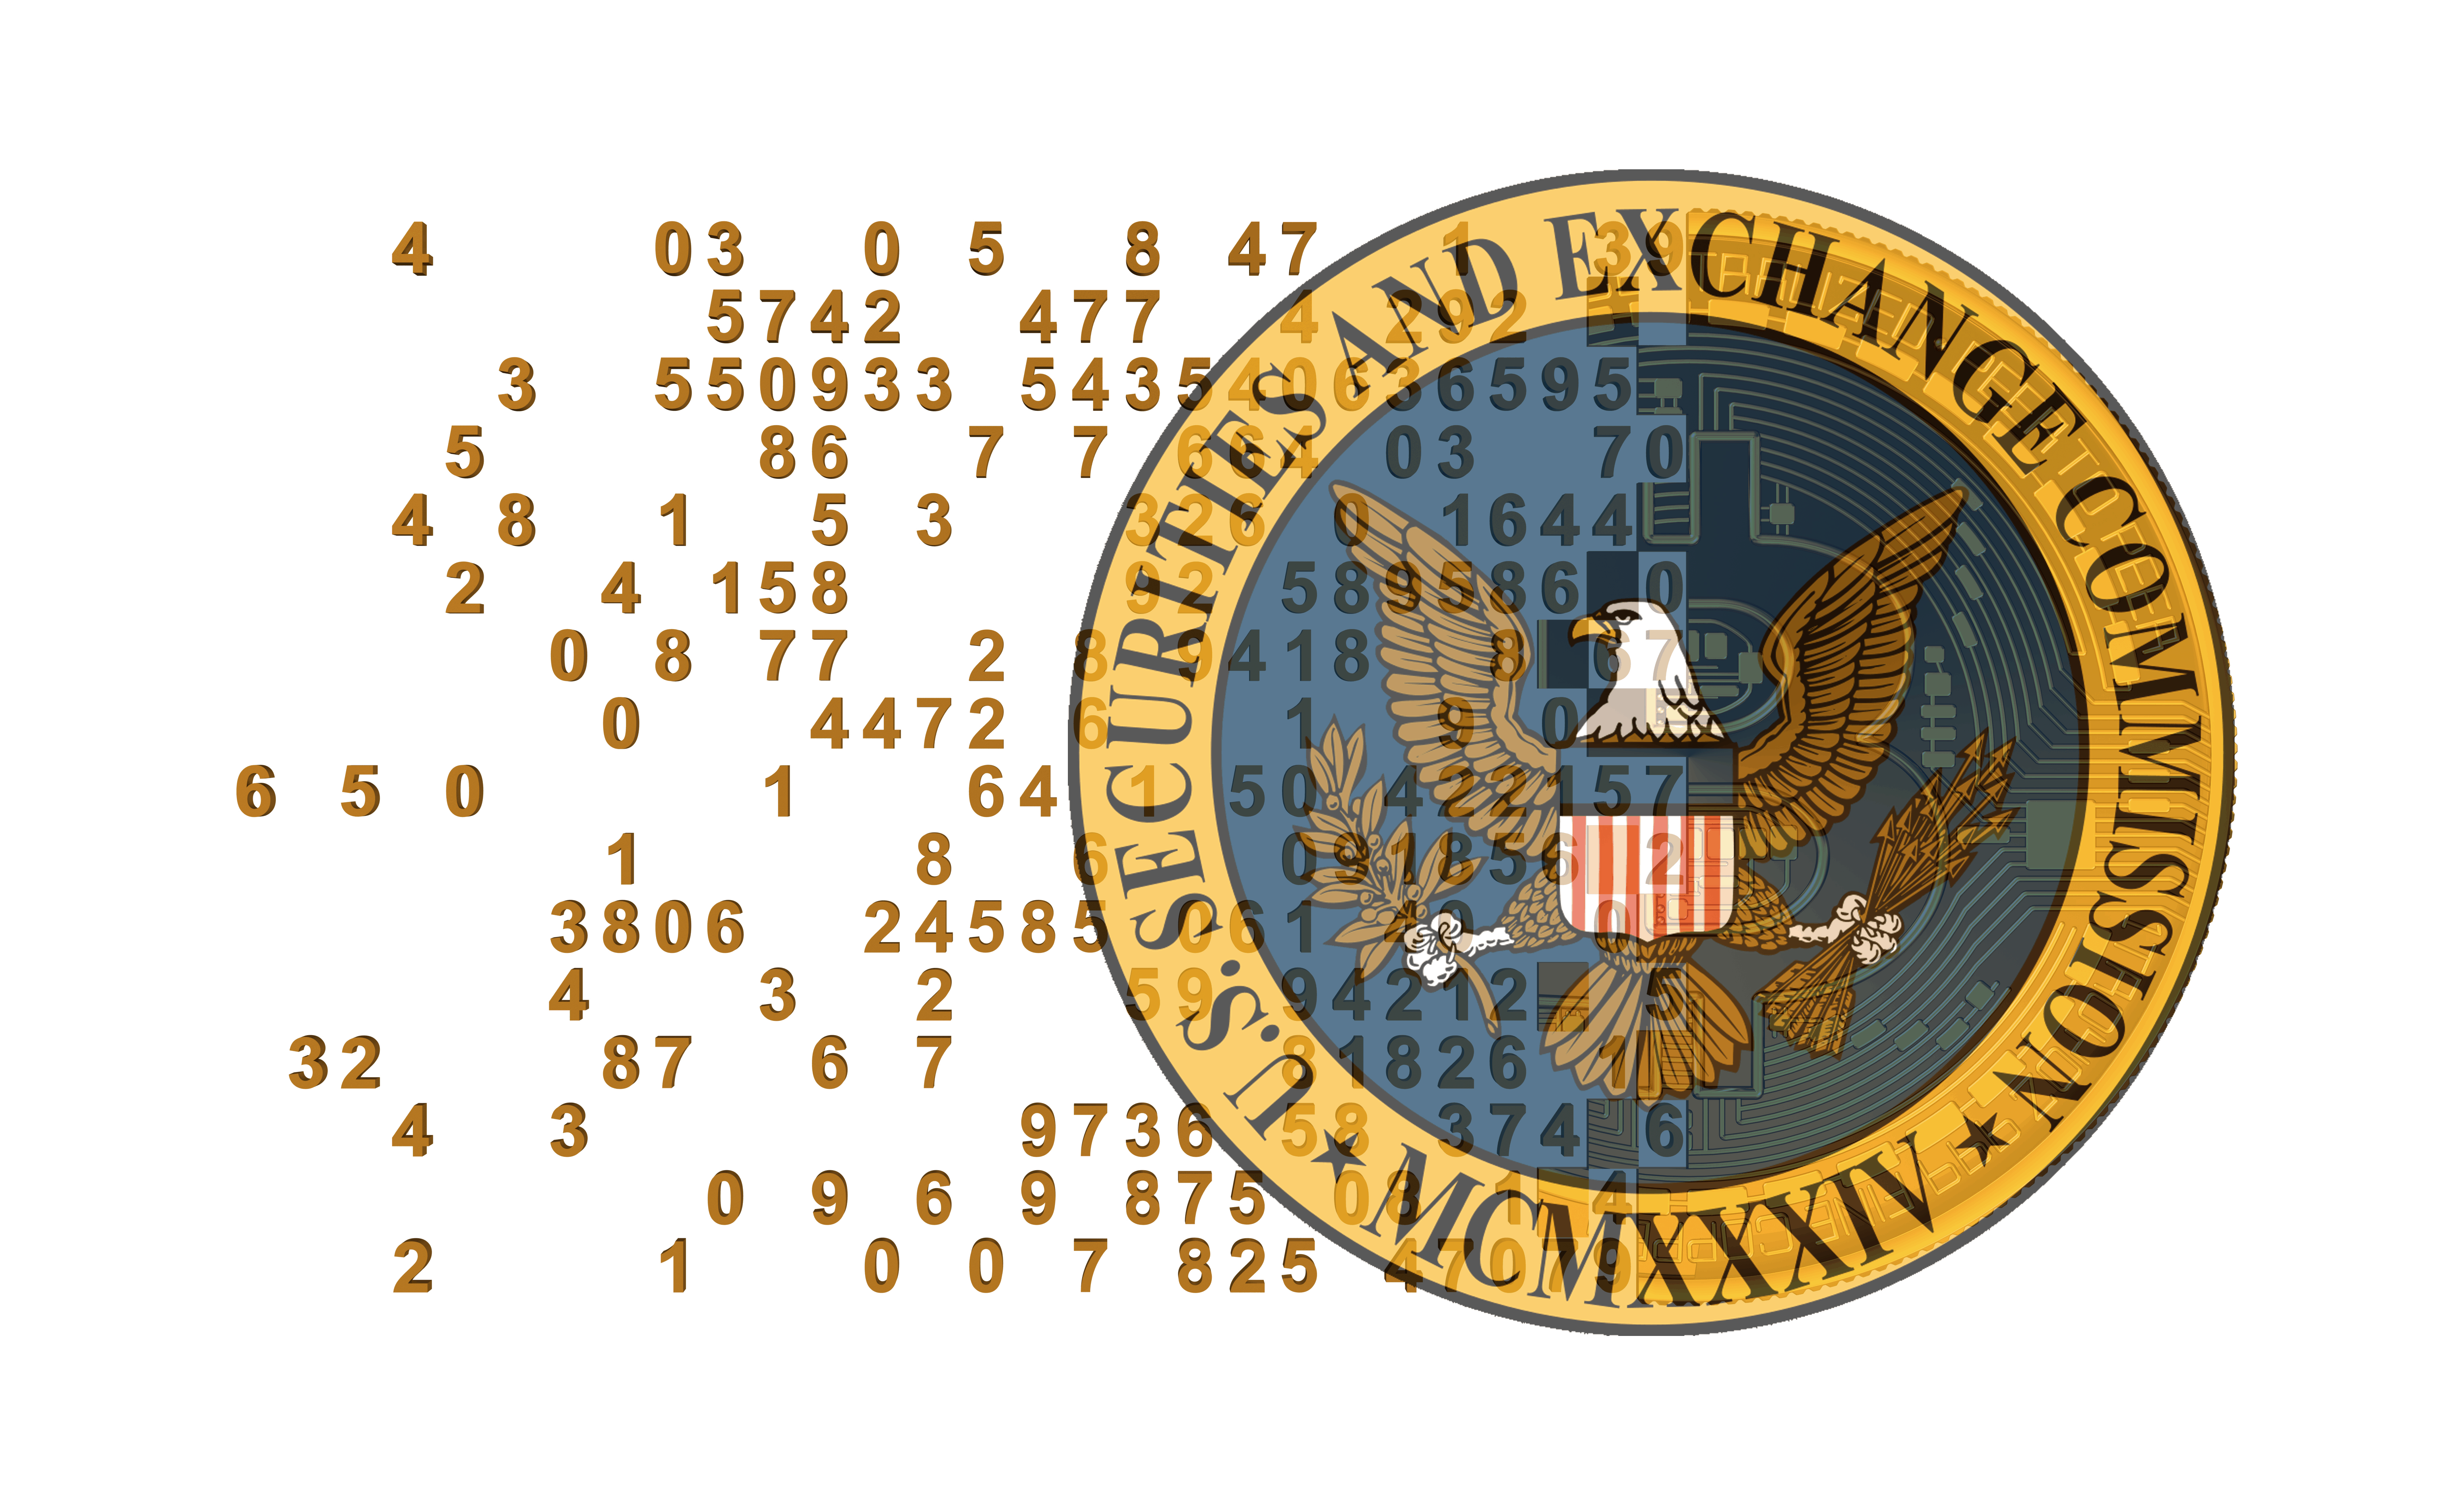 SEC Provides Guidance on Initial Coin Offerings